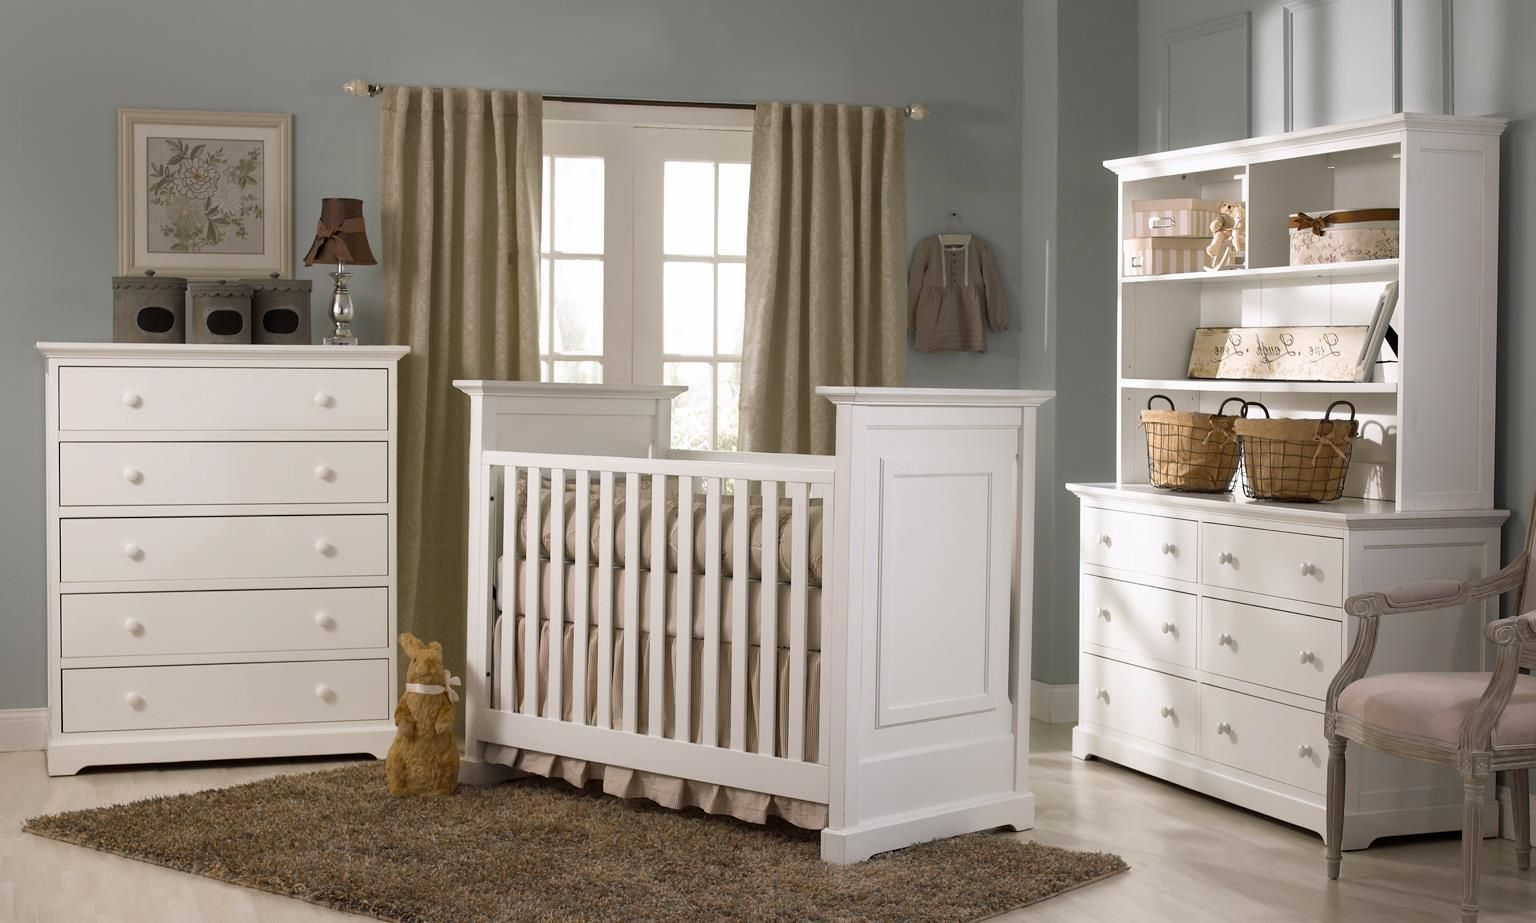 Bedroom Neutral Baby Nursery Ideas For Welcoming All